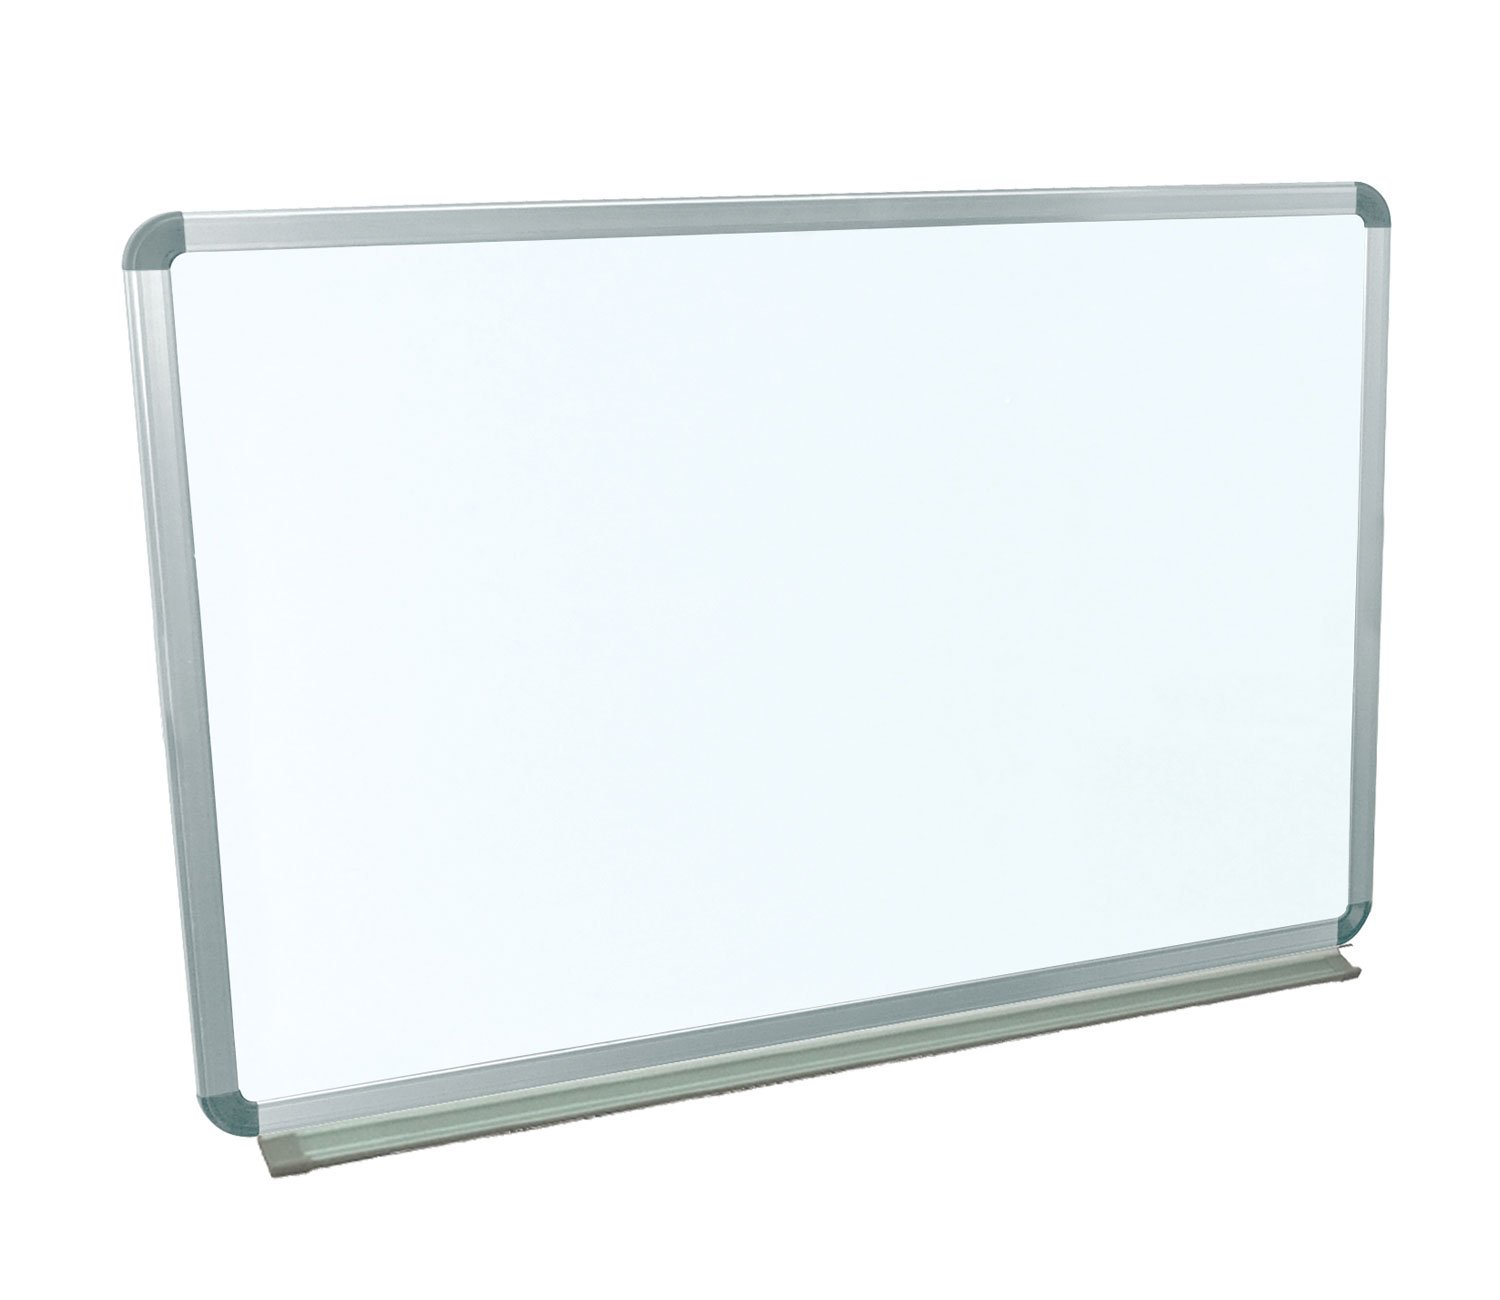 Offex Universal Dry Erase Classroom Wallmount Magnetic Whiteboard With Aluminium Frame And Tray, 36'' X 24''